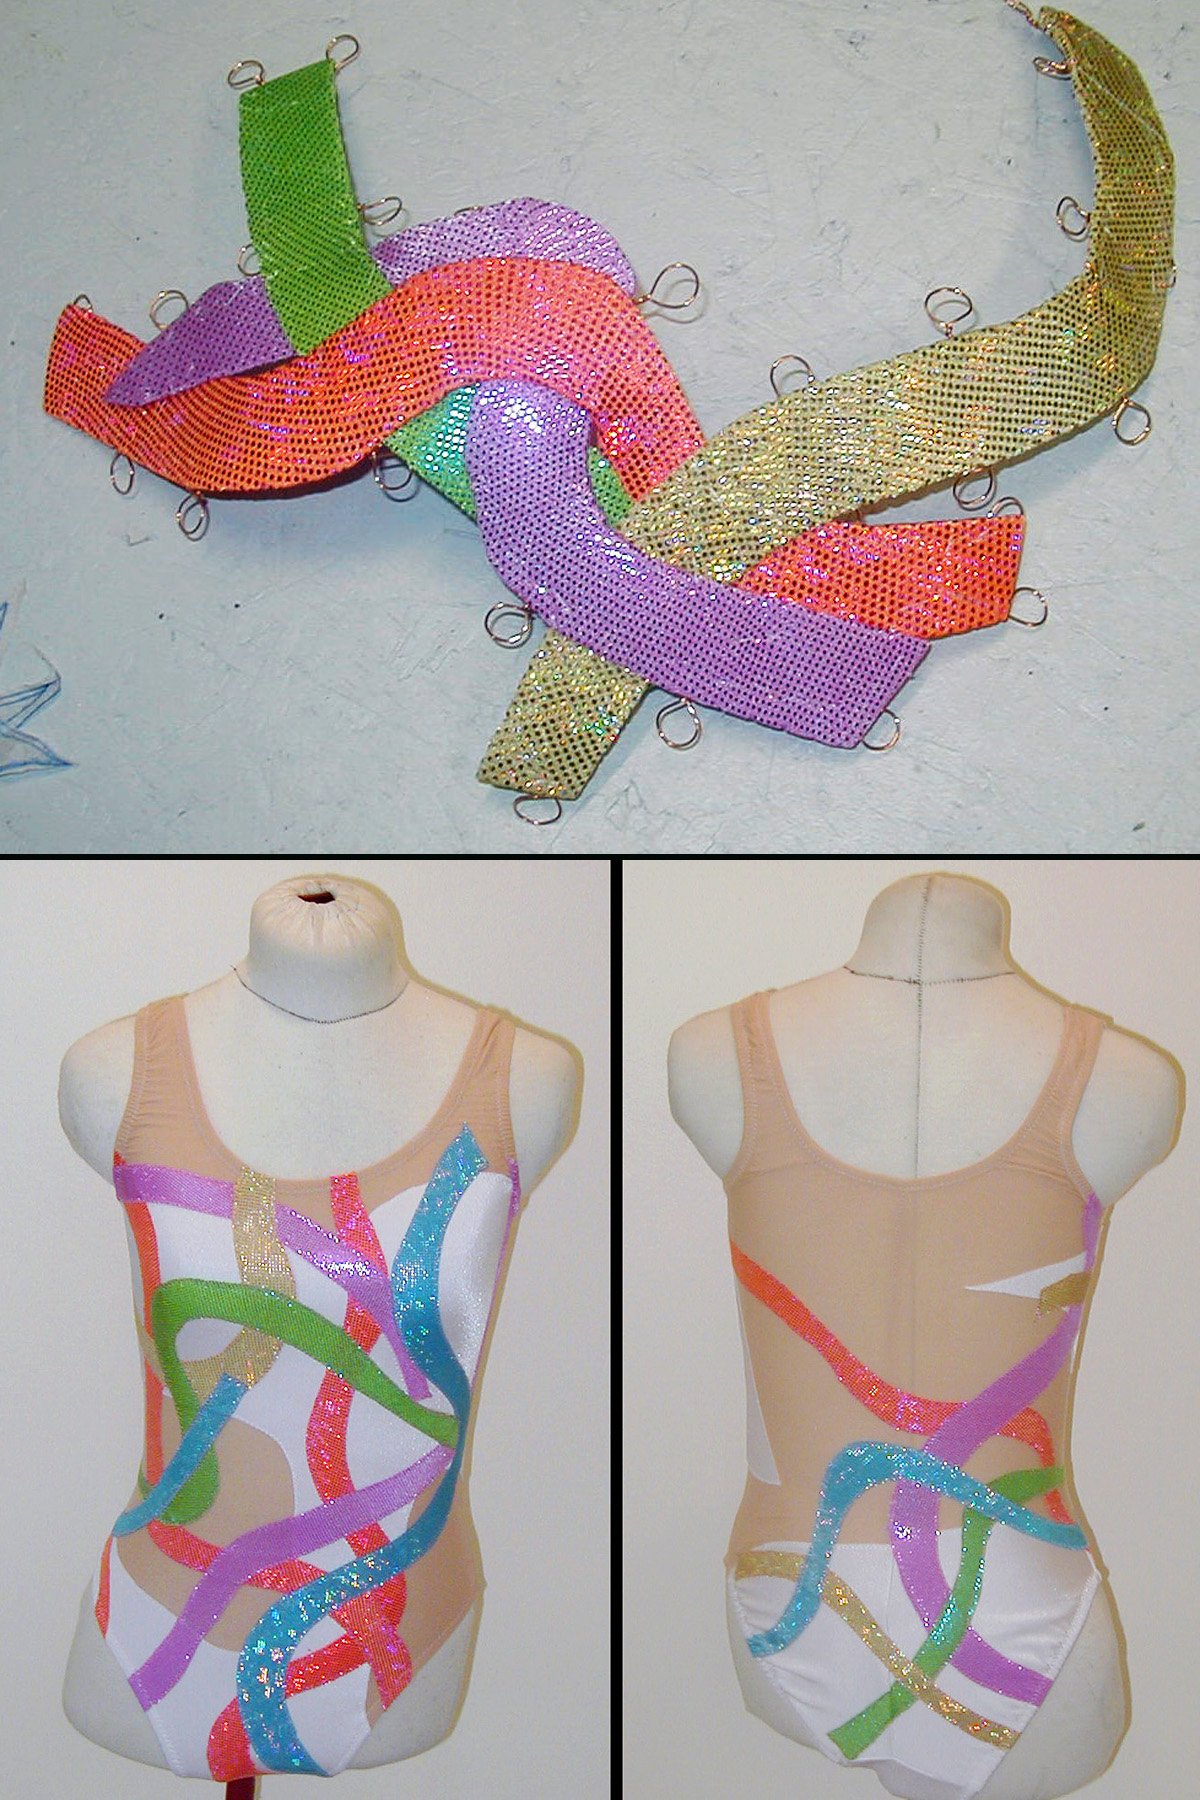 A 3 photo compilation image showing a colourful synchro headpiece, with a matching synchro swimsuit.